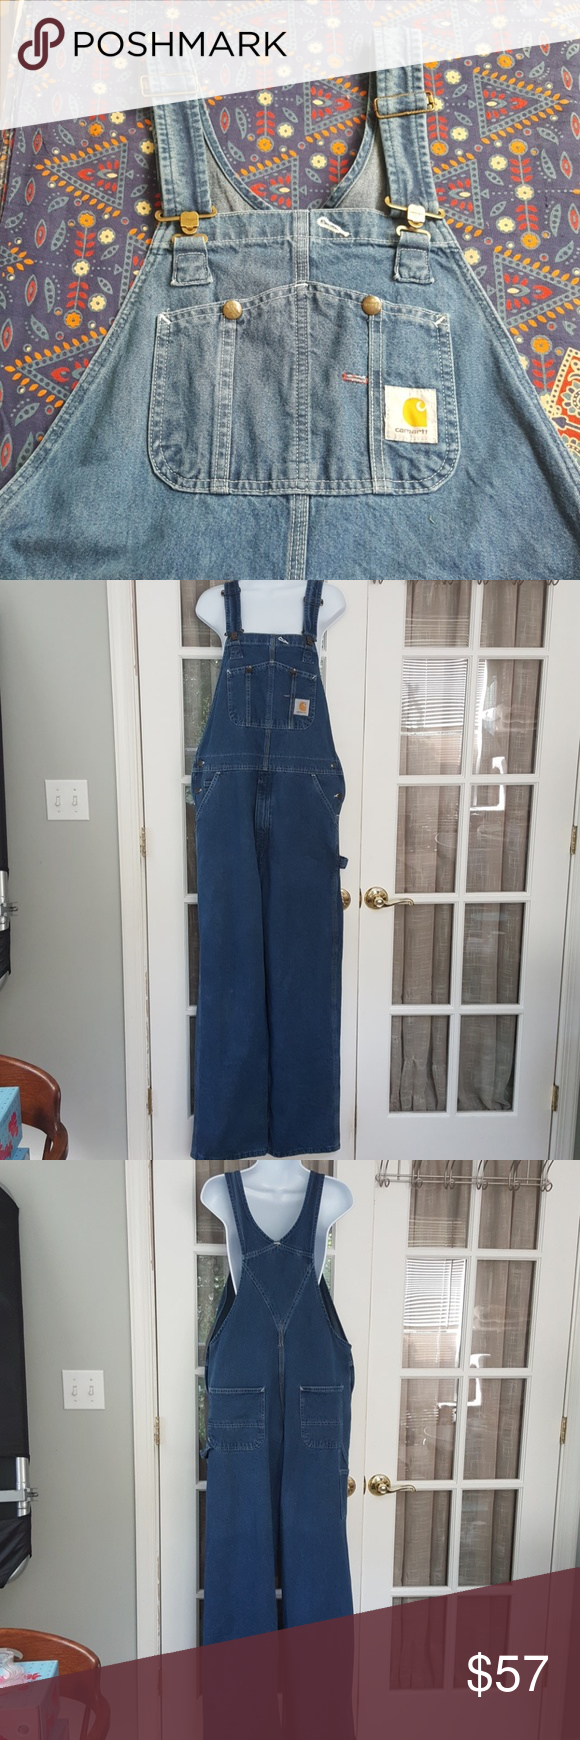 Carhartt Women's Denim Bib Overalls Carhartt Women's Denim Bib Overalls   Women's size 38 x 32 Perfect for chores or working around the house, going to a concert, shopping, whatever! Many assorted pockets, even a hammer loop! Carhartt Jeans Overalls #carharttwomen Carhartt Women's Denim Bib Overalls Carhartt Women's Denim Bib Overalls   Women's size 38 x 32 Perfect for chores or working around the house, going to a concert, shopping, whatever! Many assorted pockets, even a hammer loop! Carhartt #carharttwomen